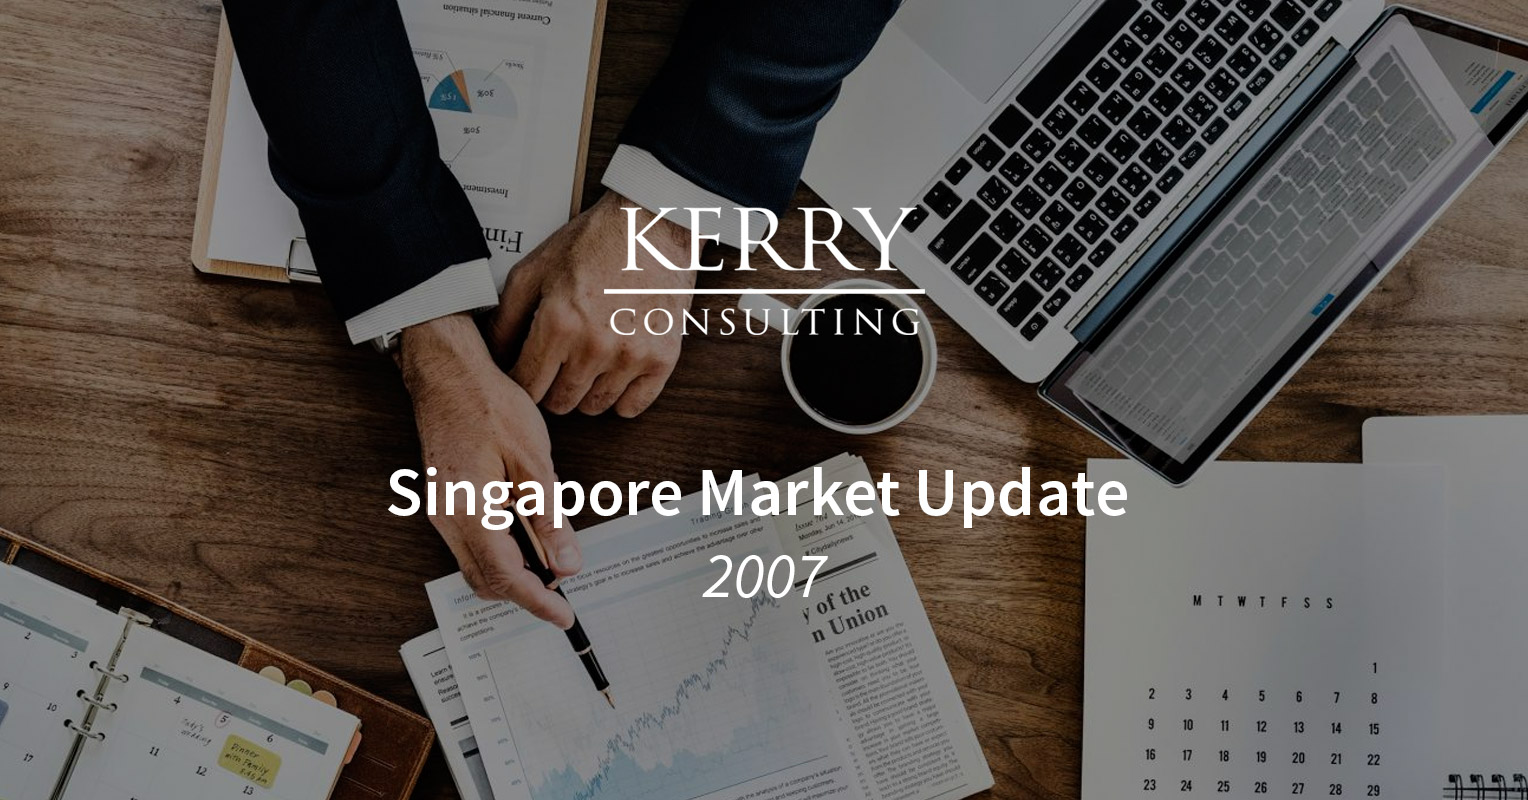 Kerry's Singapore Market Update 2007